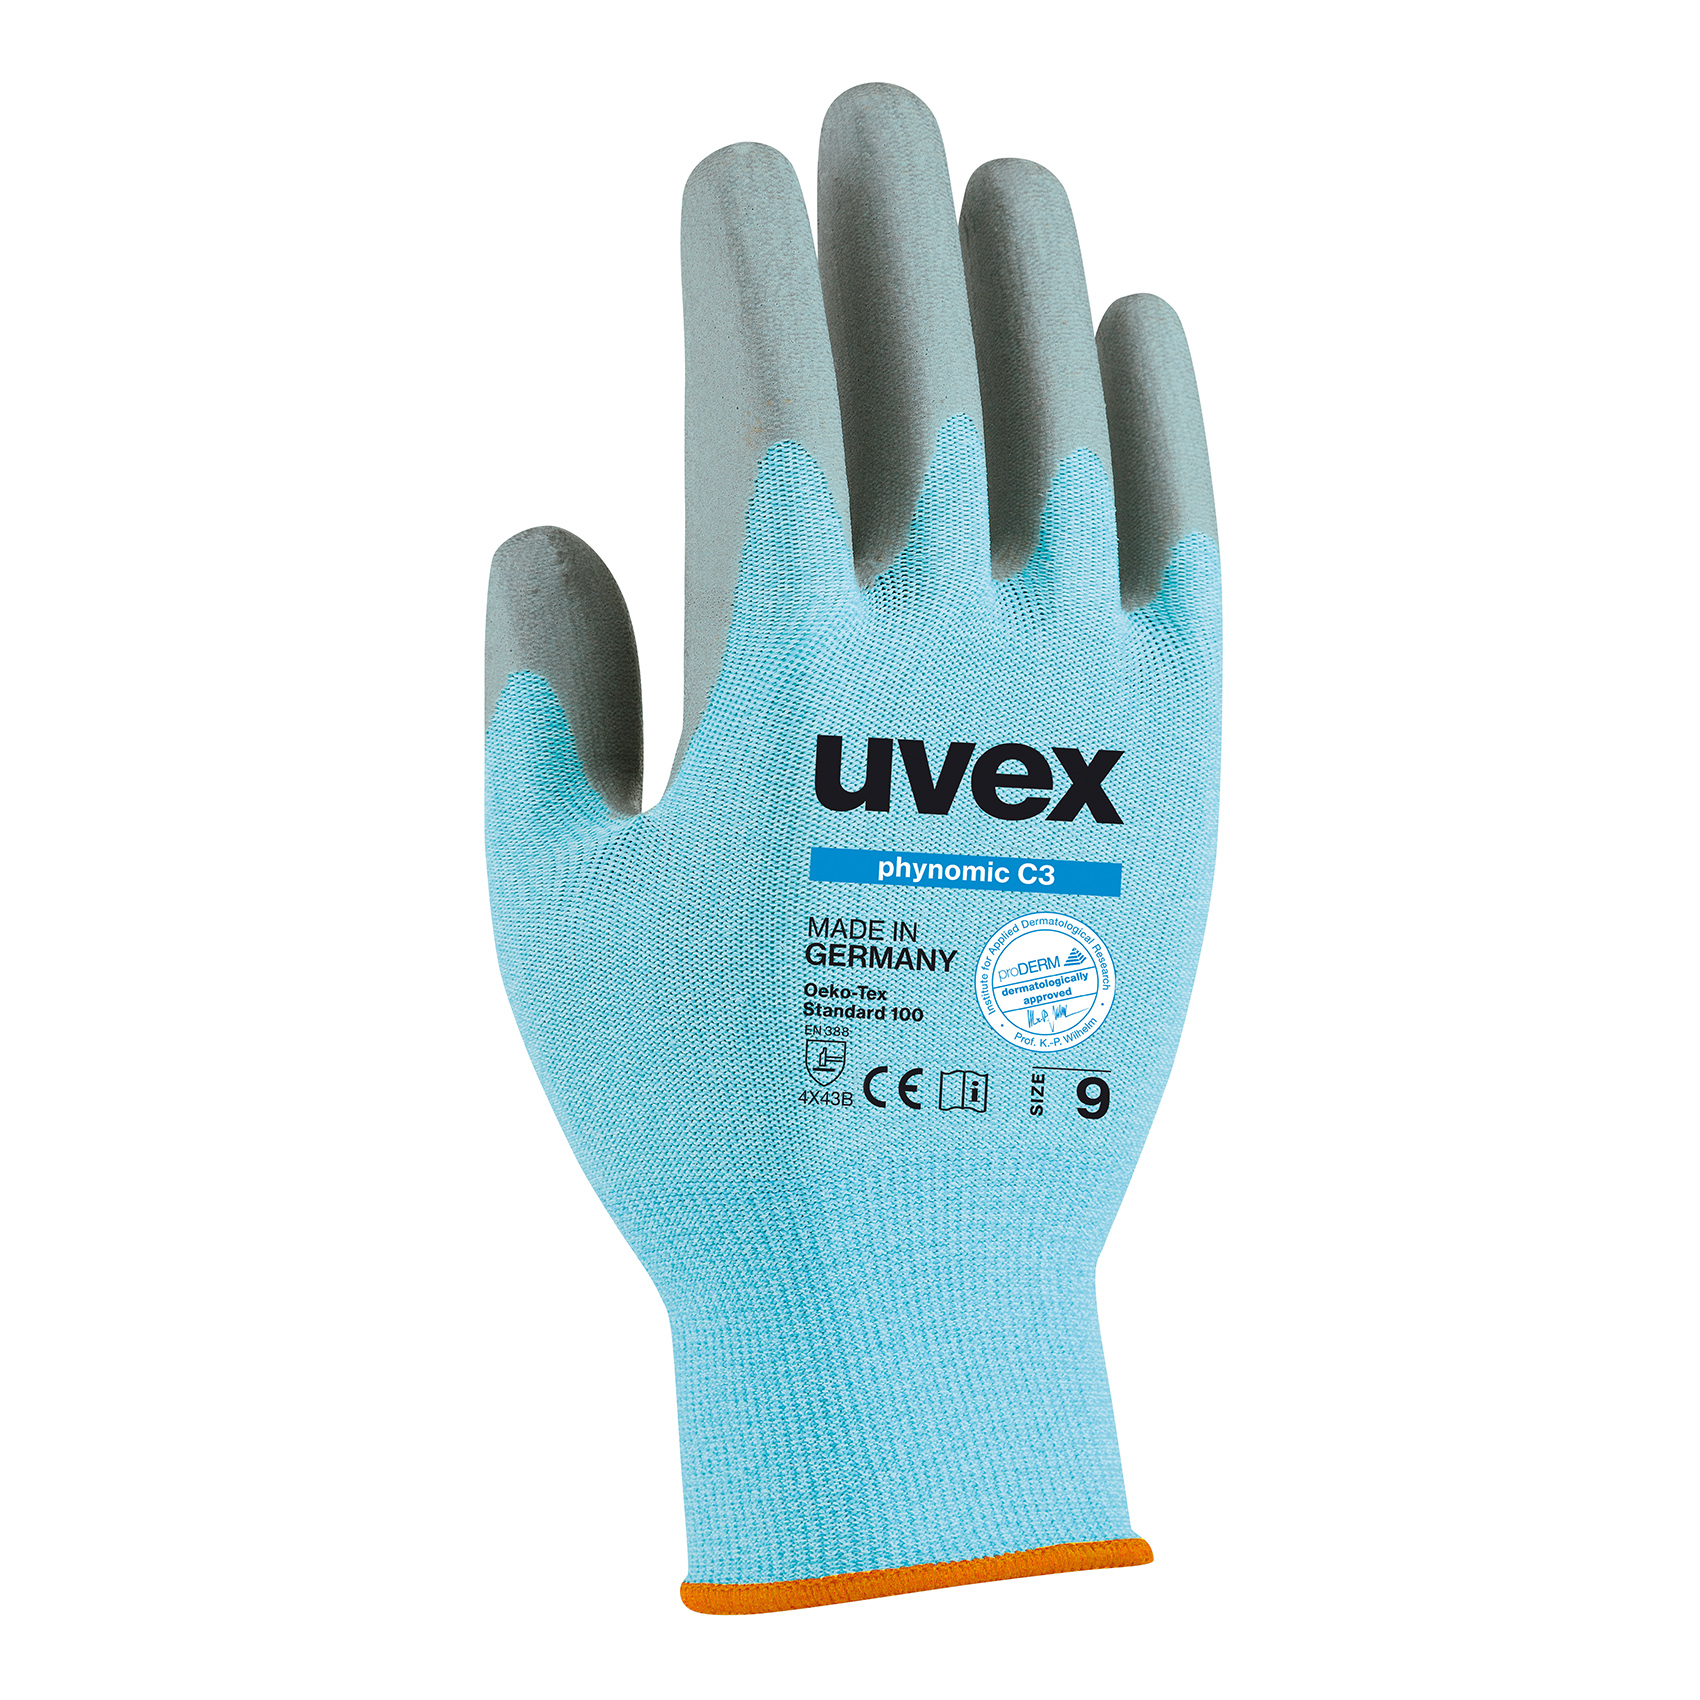 Uvex Phynomic C3 Cut Protection Glove Safety Gloves